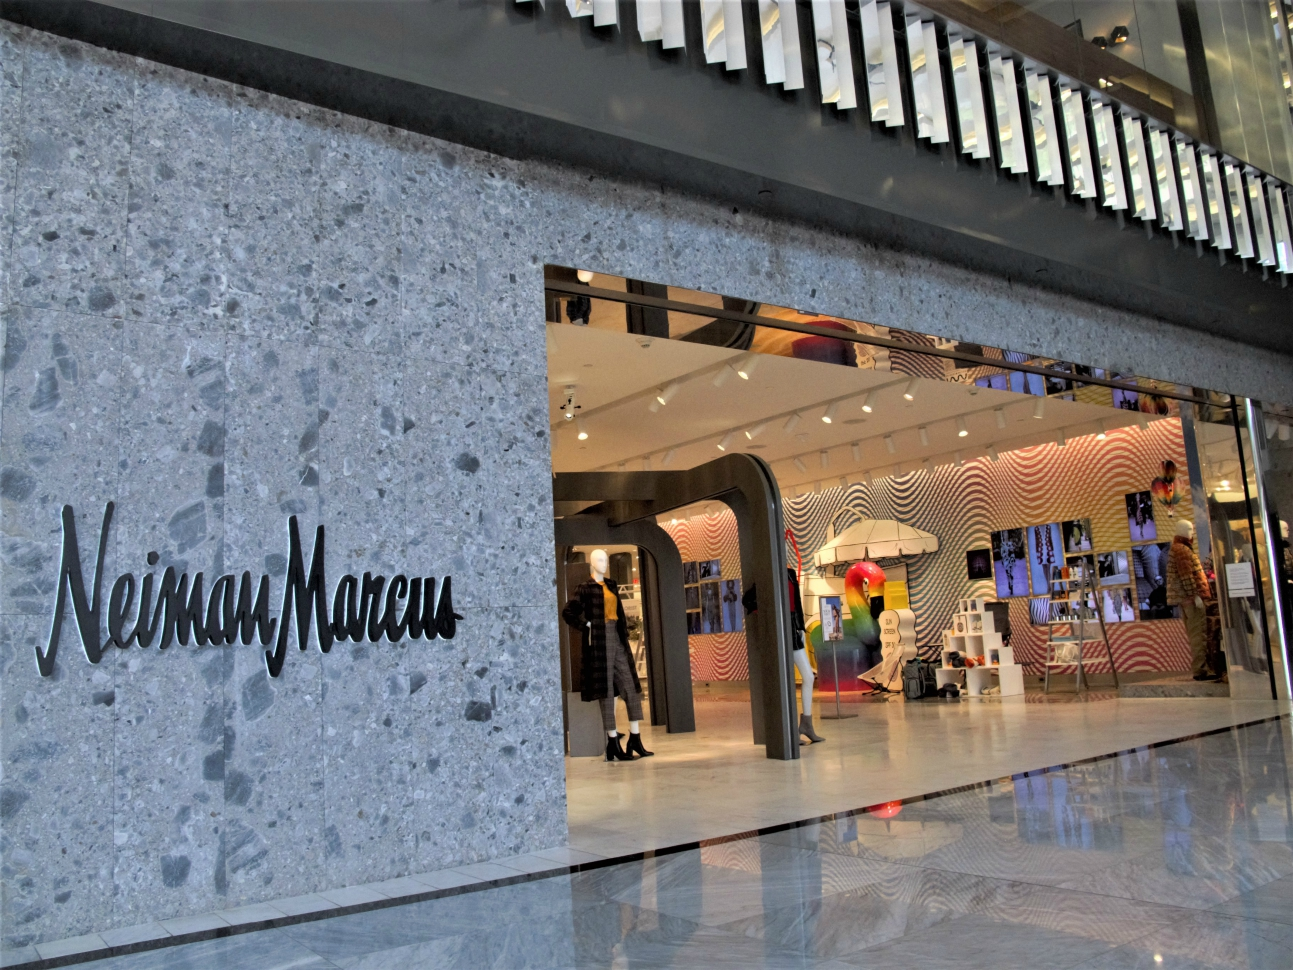 With a Neiman Marcus bankruptcy filing said to be close, HBC's Richard Baker could be the white knight to acquire the luxury retailer.